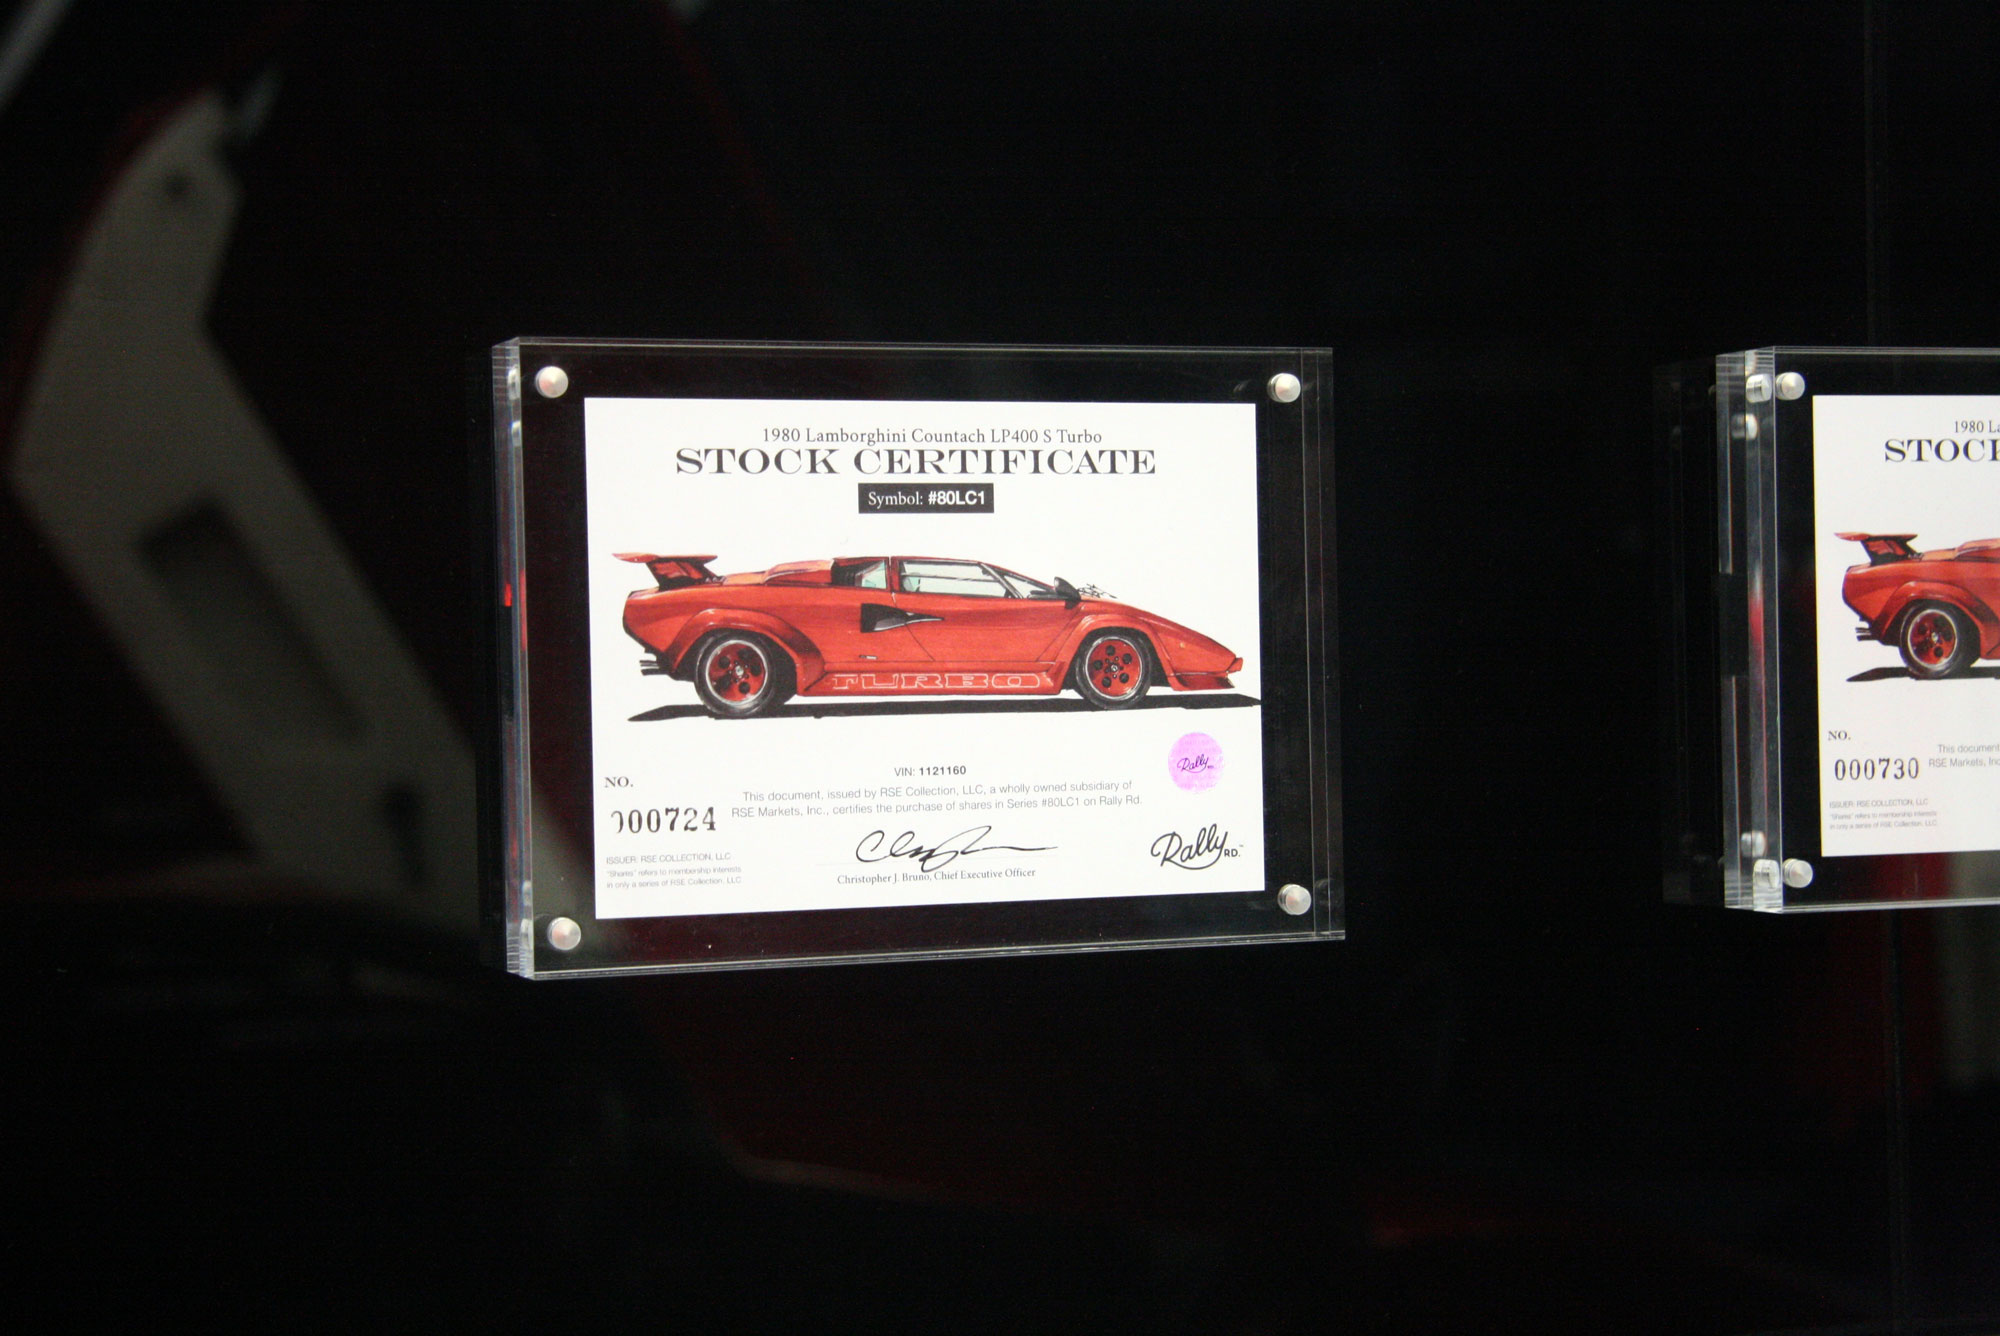 1980 Lamborghini Countach LP400 S Turbo plaque